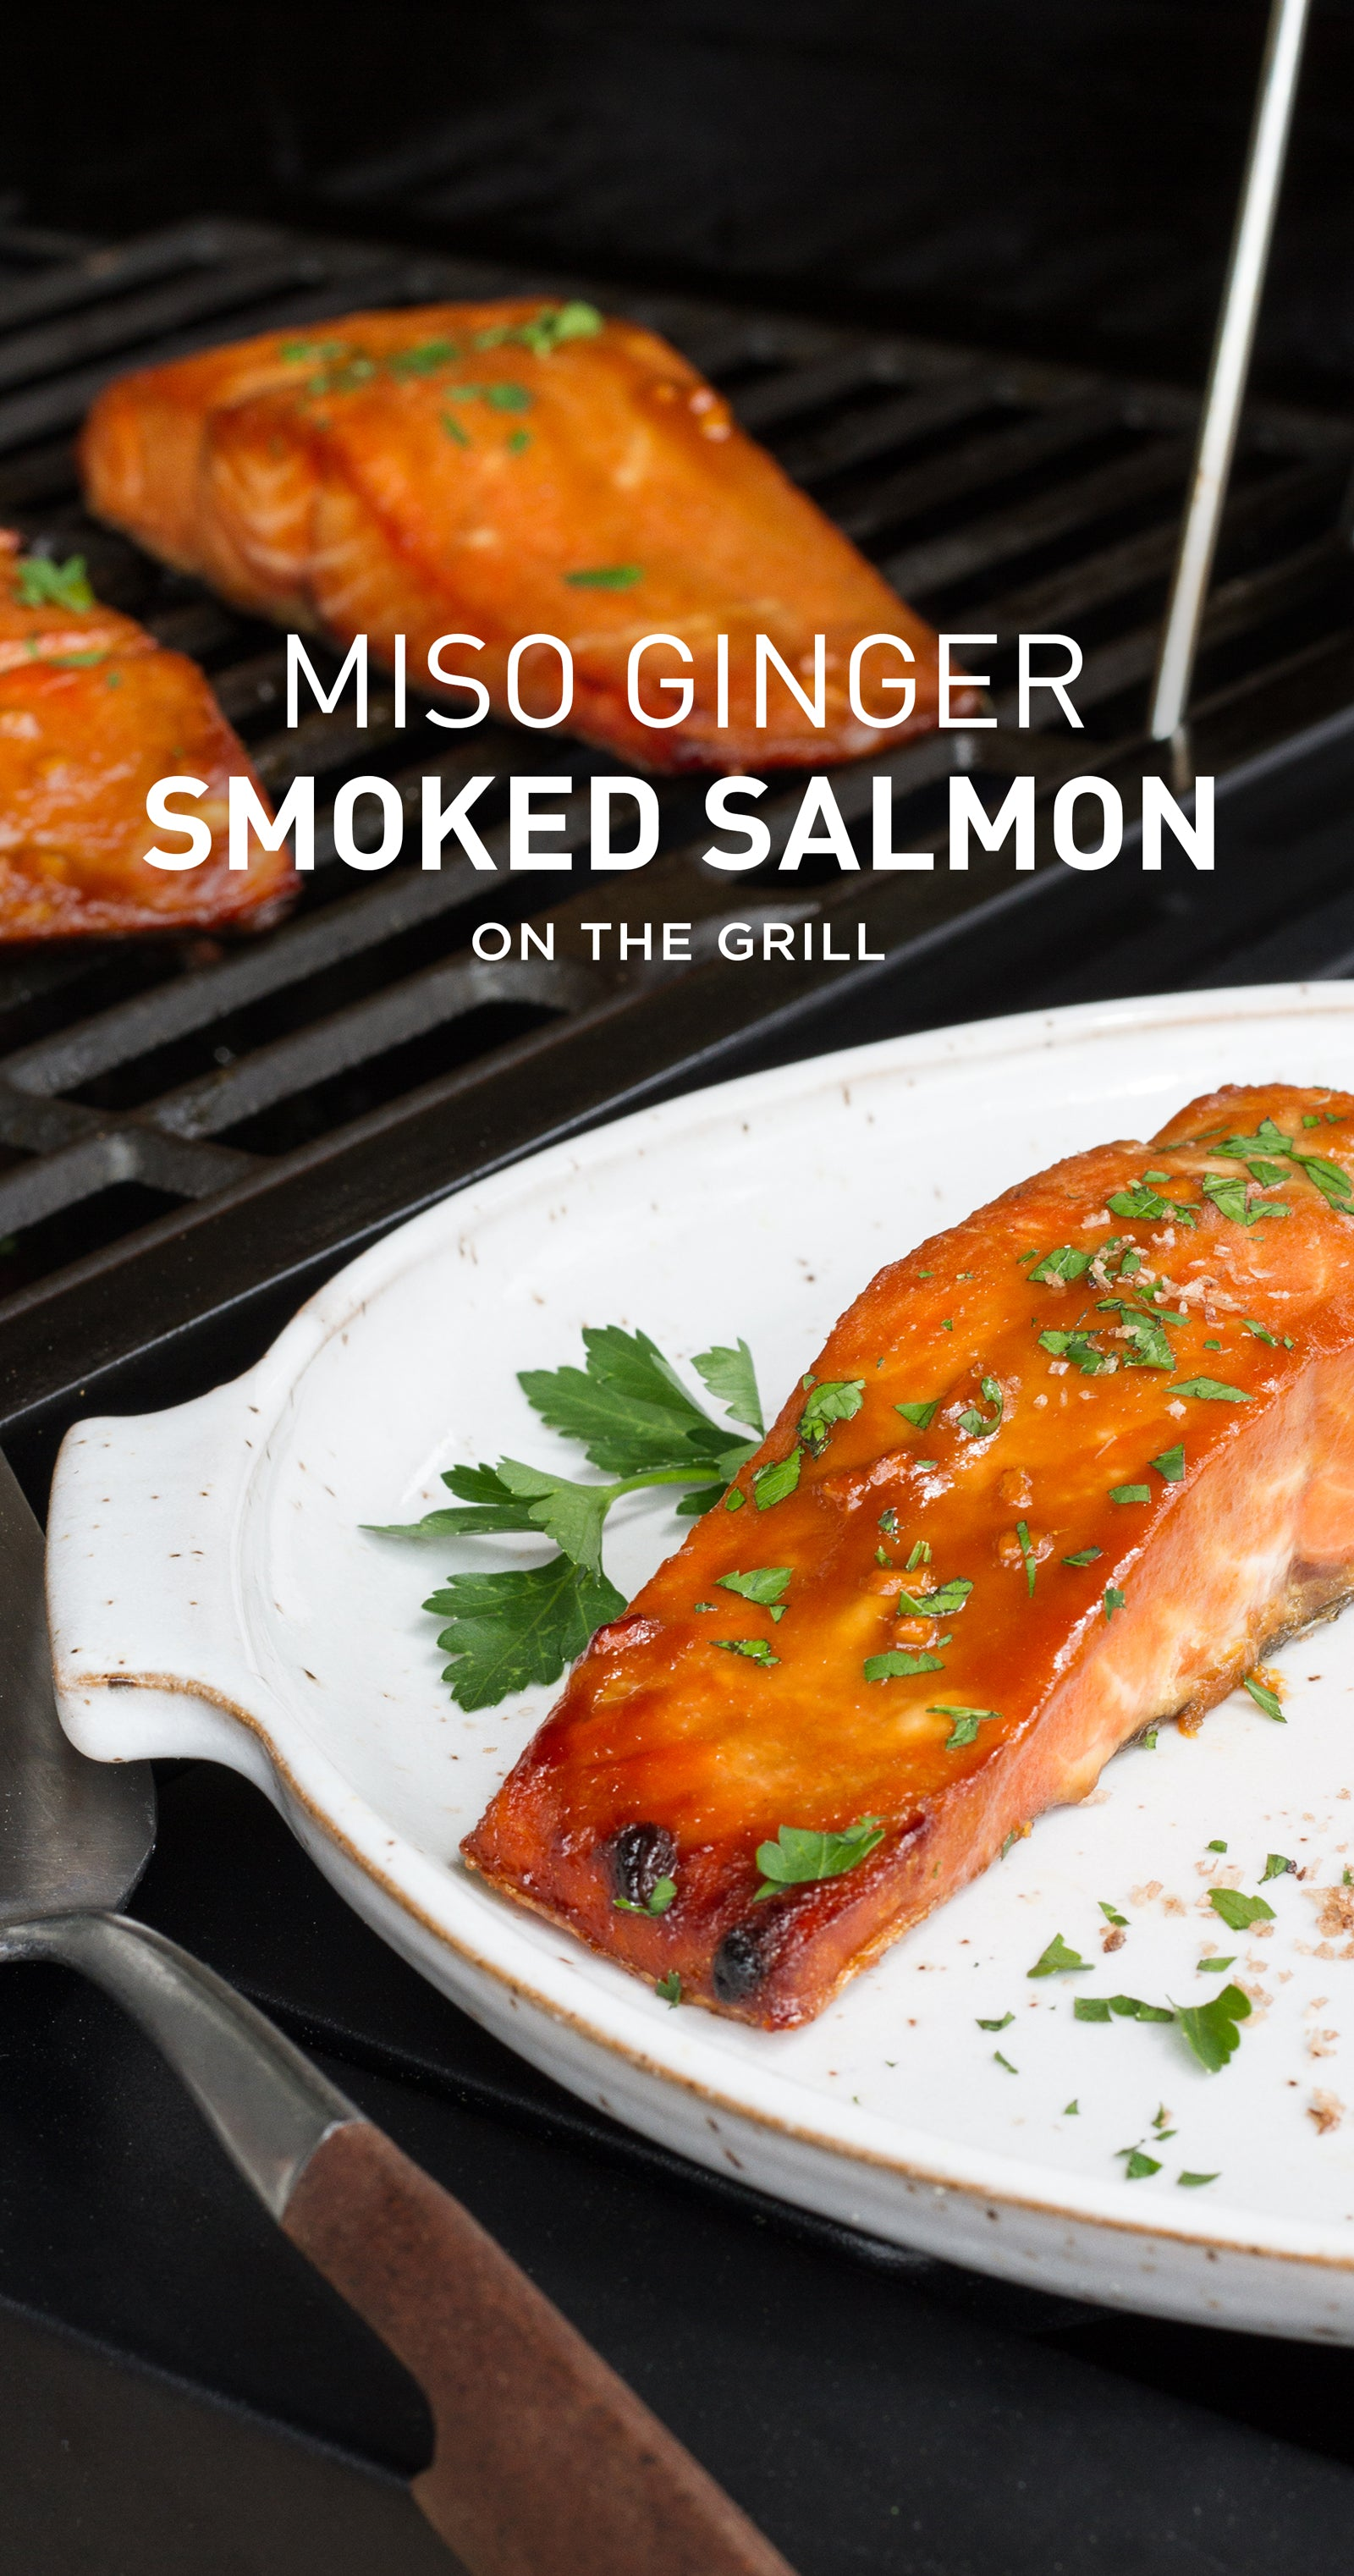 Recipe: Miso ginger smoked salmon on the grill